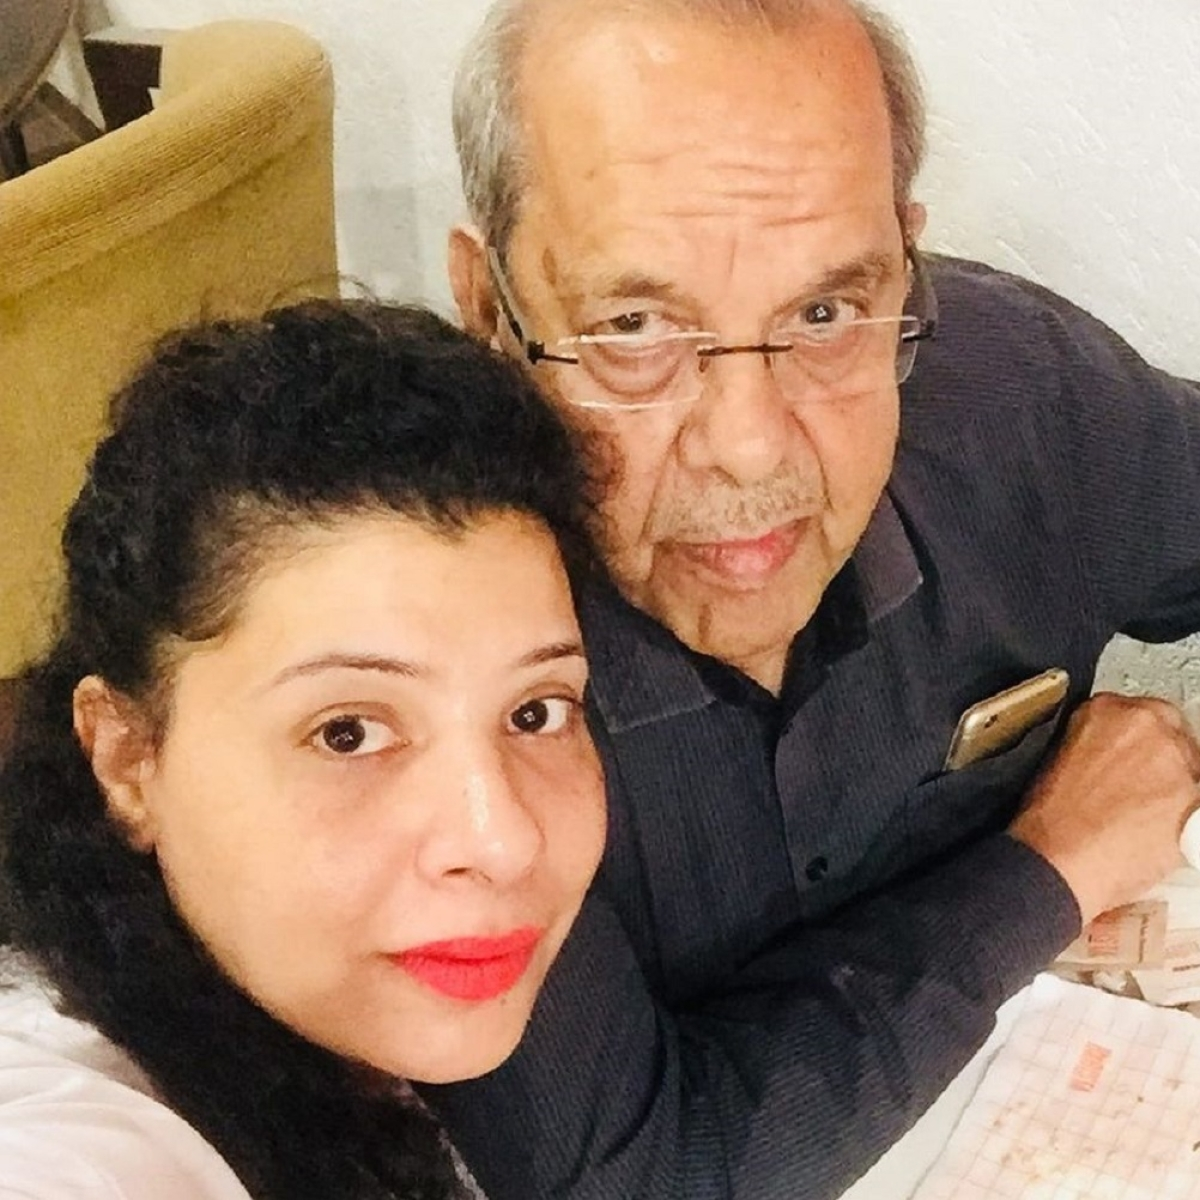 'Bigg Boss' fame Sambhavna Seth's father passes away after testing COVID-19 positive